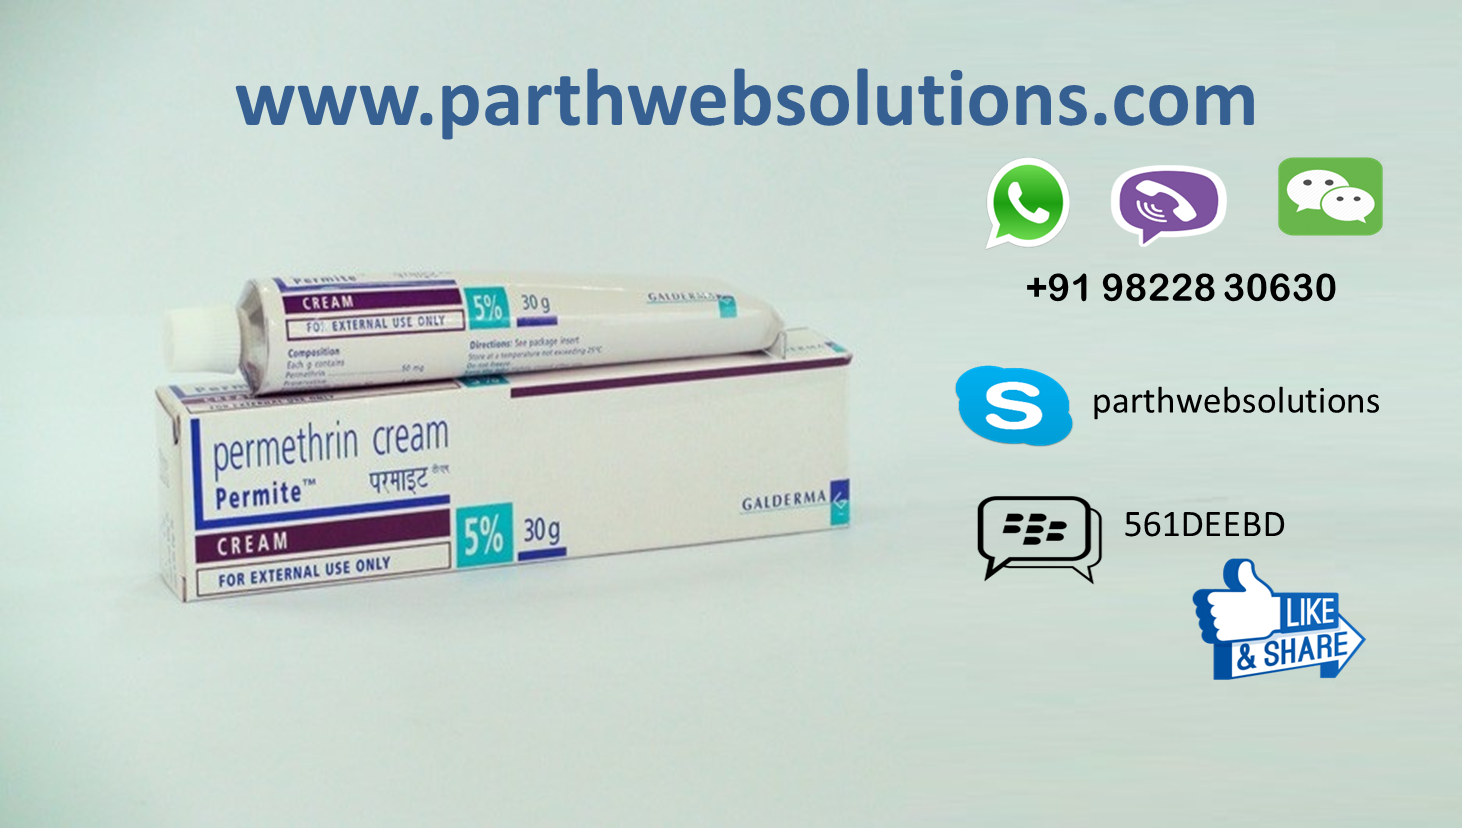 Acticin Cream, Permite (Permethrin Cream)